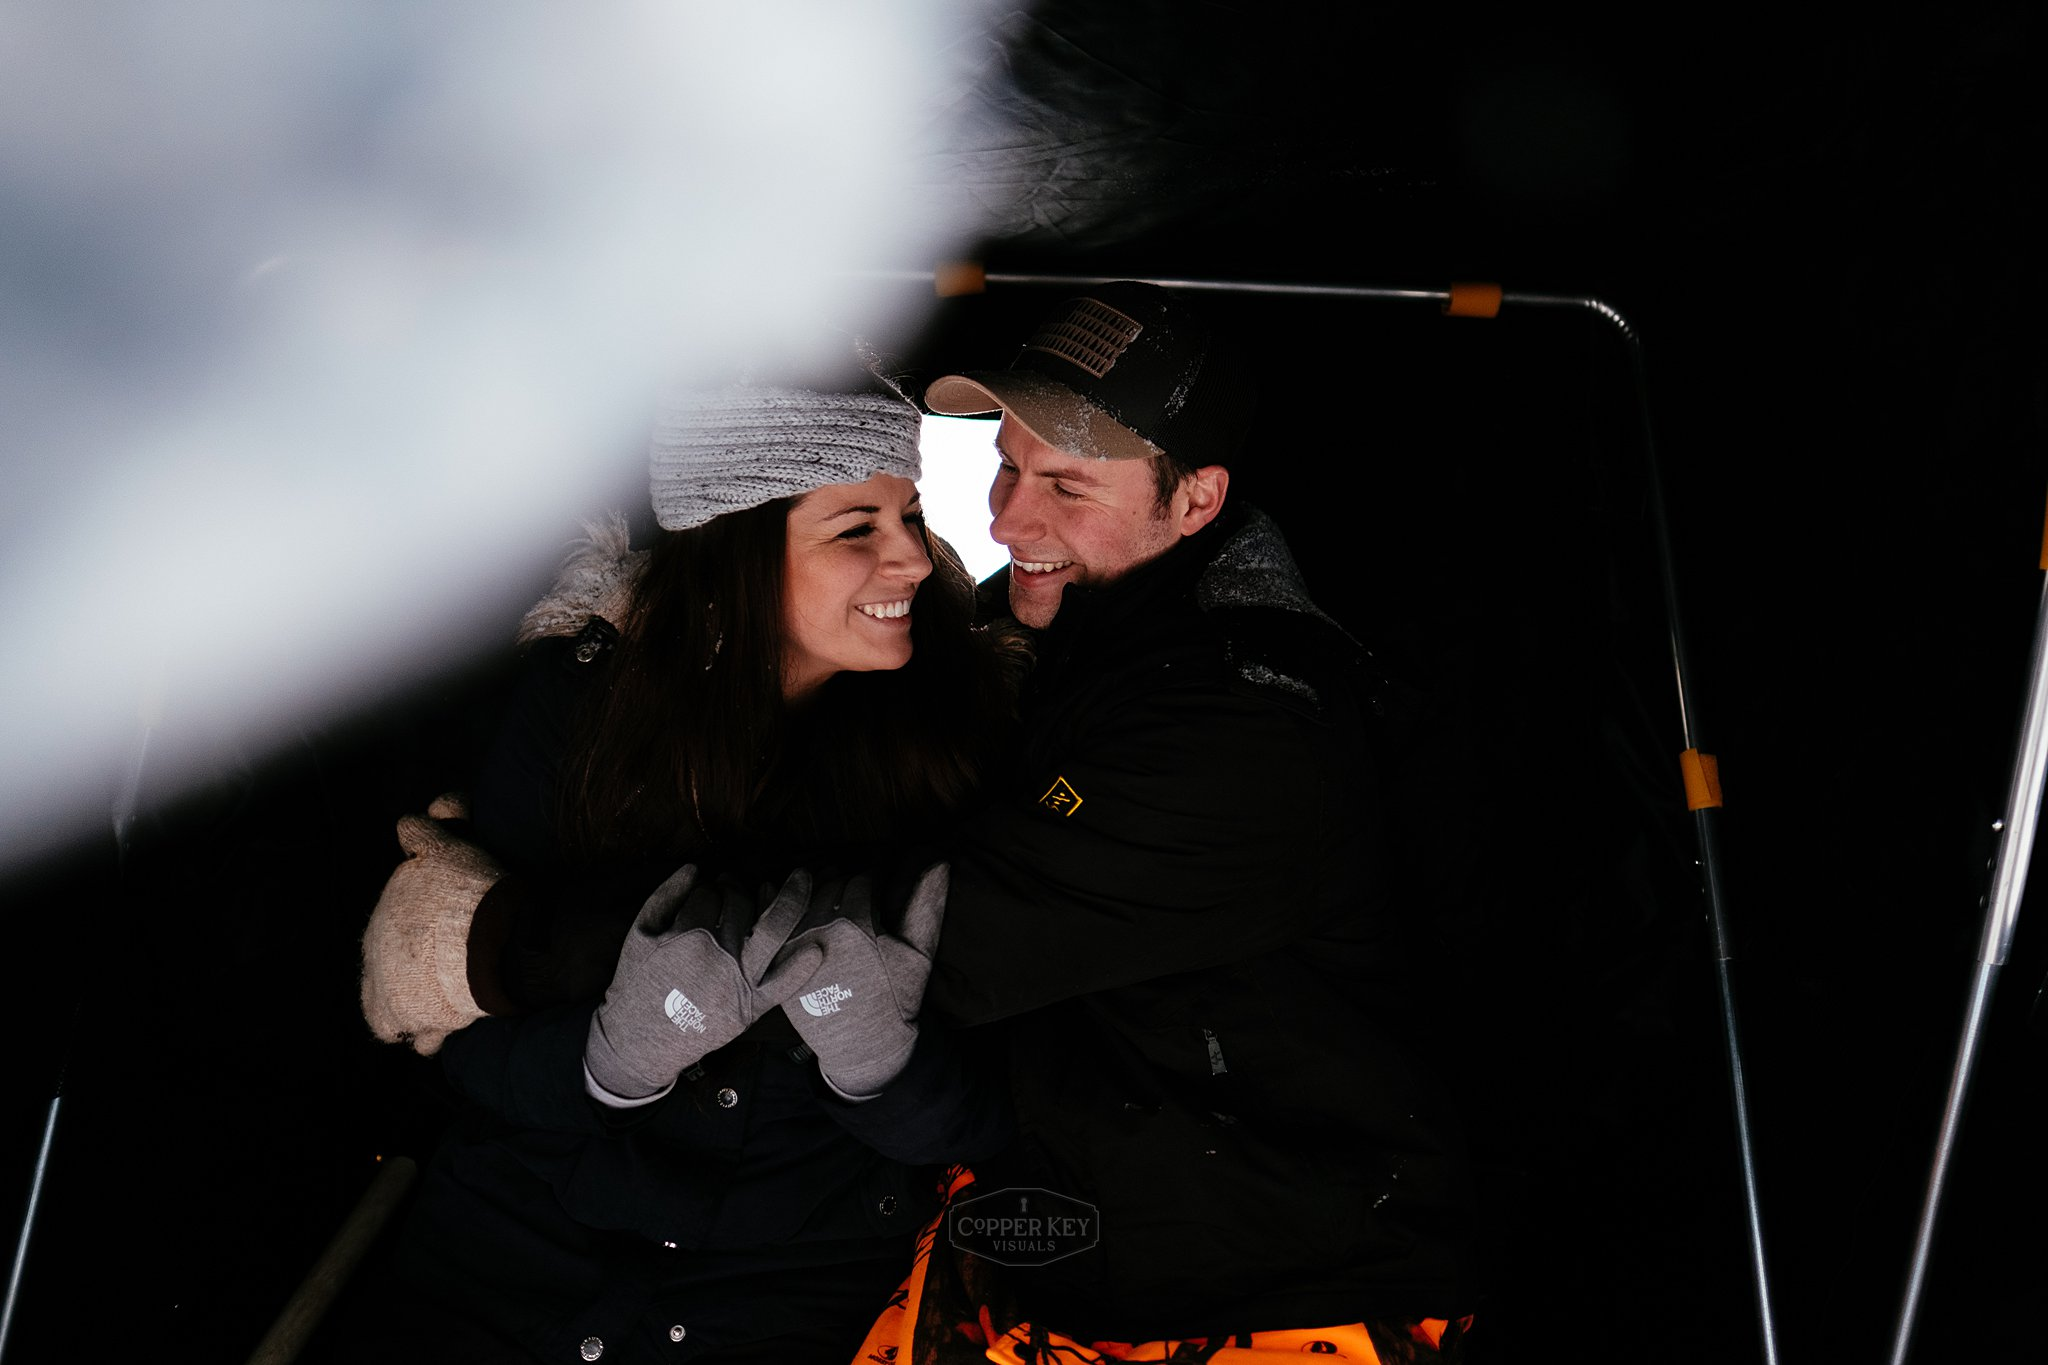 Copper Key Visuals Wisconsin Ice Fishing Engagement Session-9.jpg